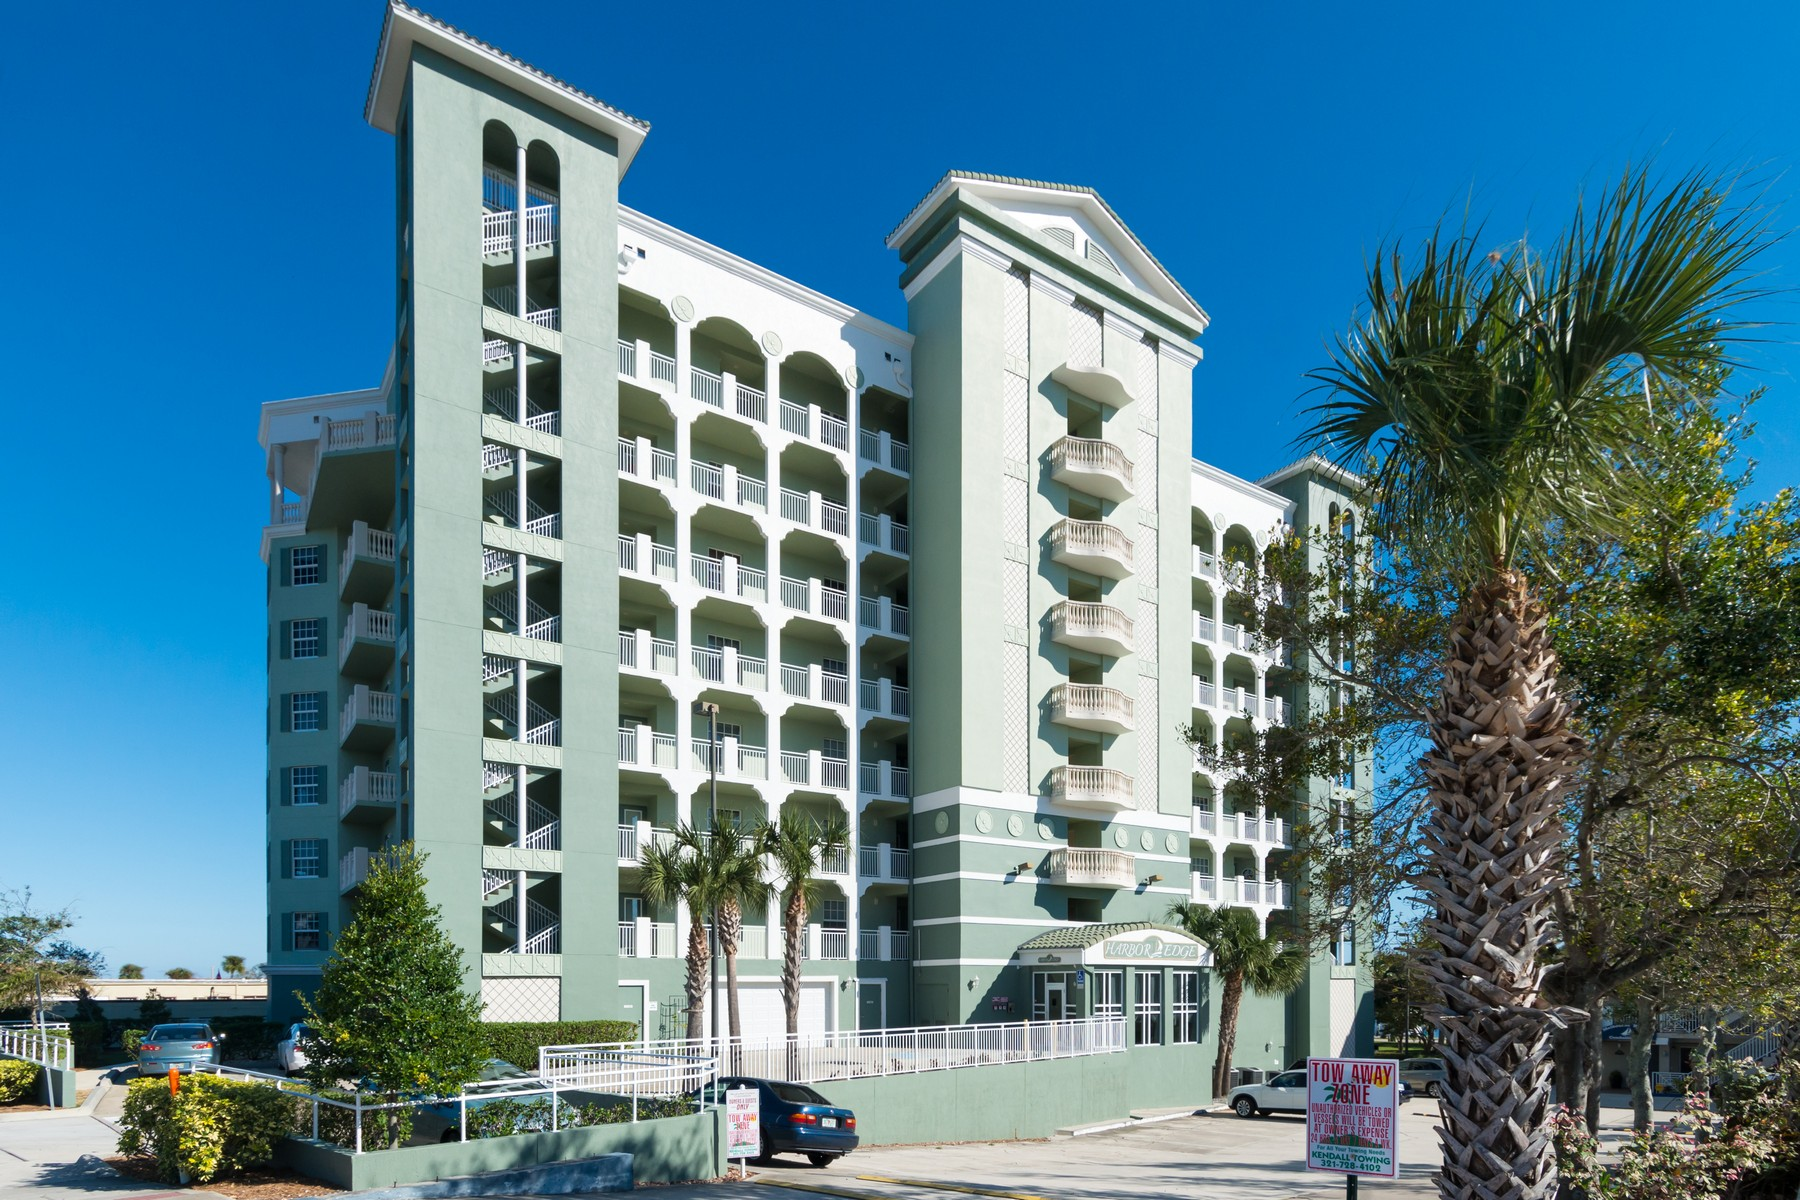 Harbor Edge Condiminium 1211 E. New Haven Avenue 803 Melbourne, Florida 32901 Hoa Kỳ